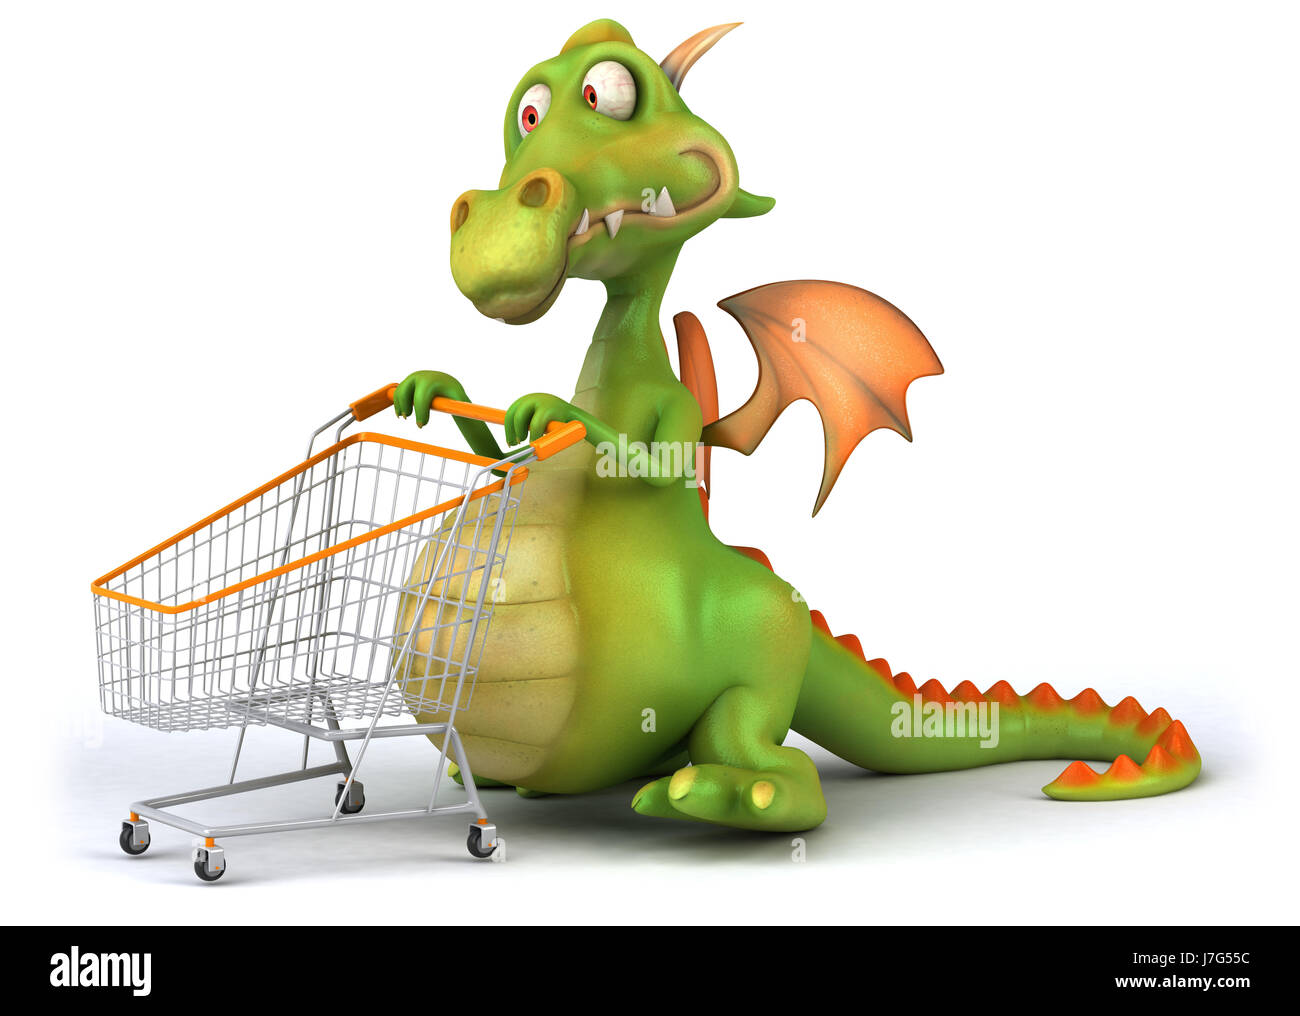 art animal dragon chinese character asian cartoon laugh laughs laughing twit - Stock Image